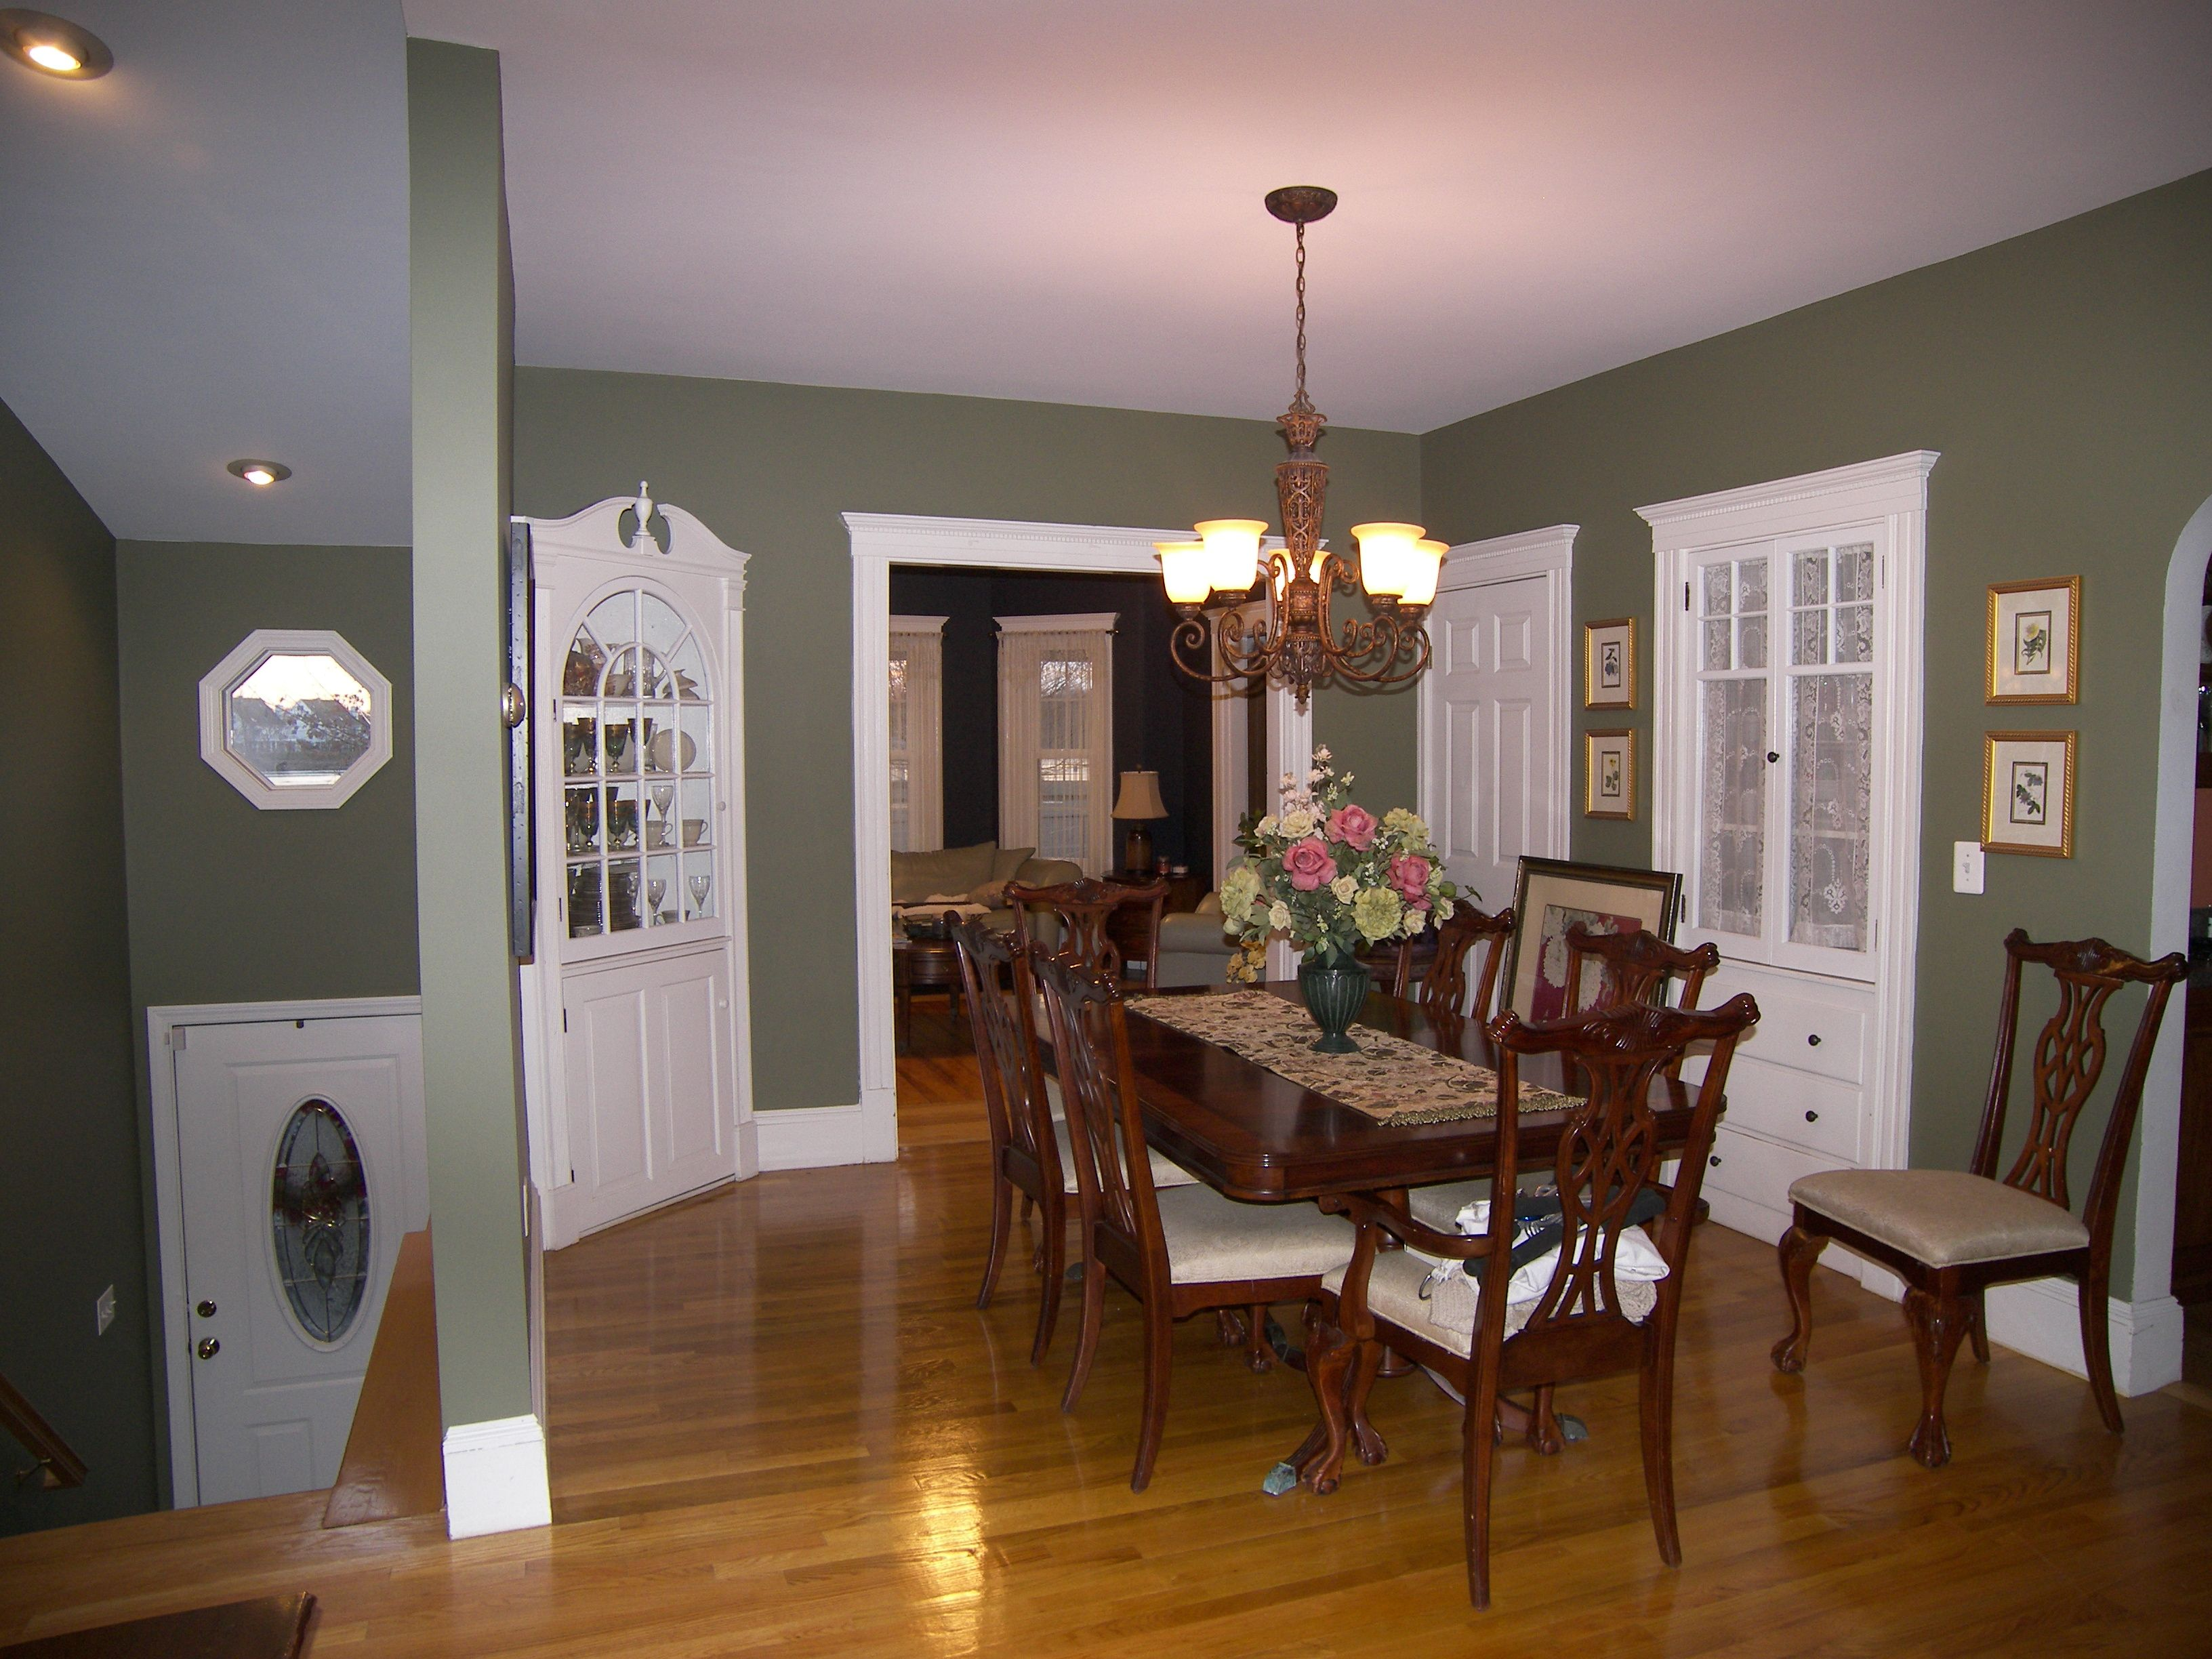 Color: Tate Olive, new living room color. Nice green color option ...